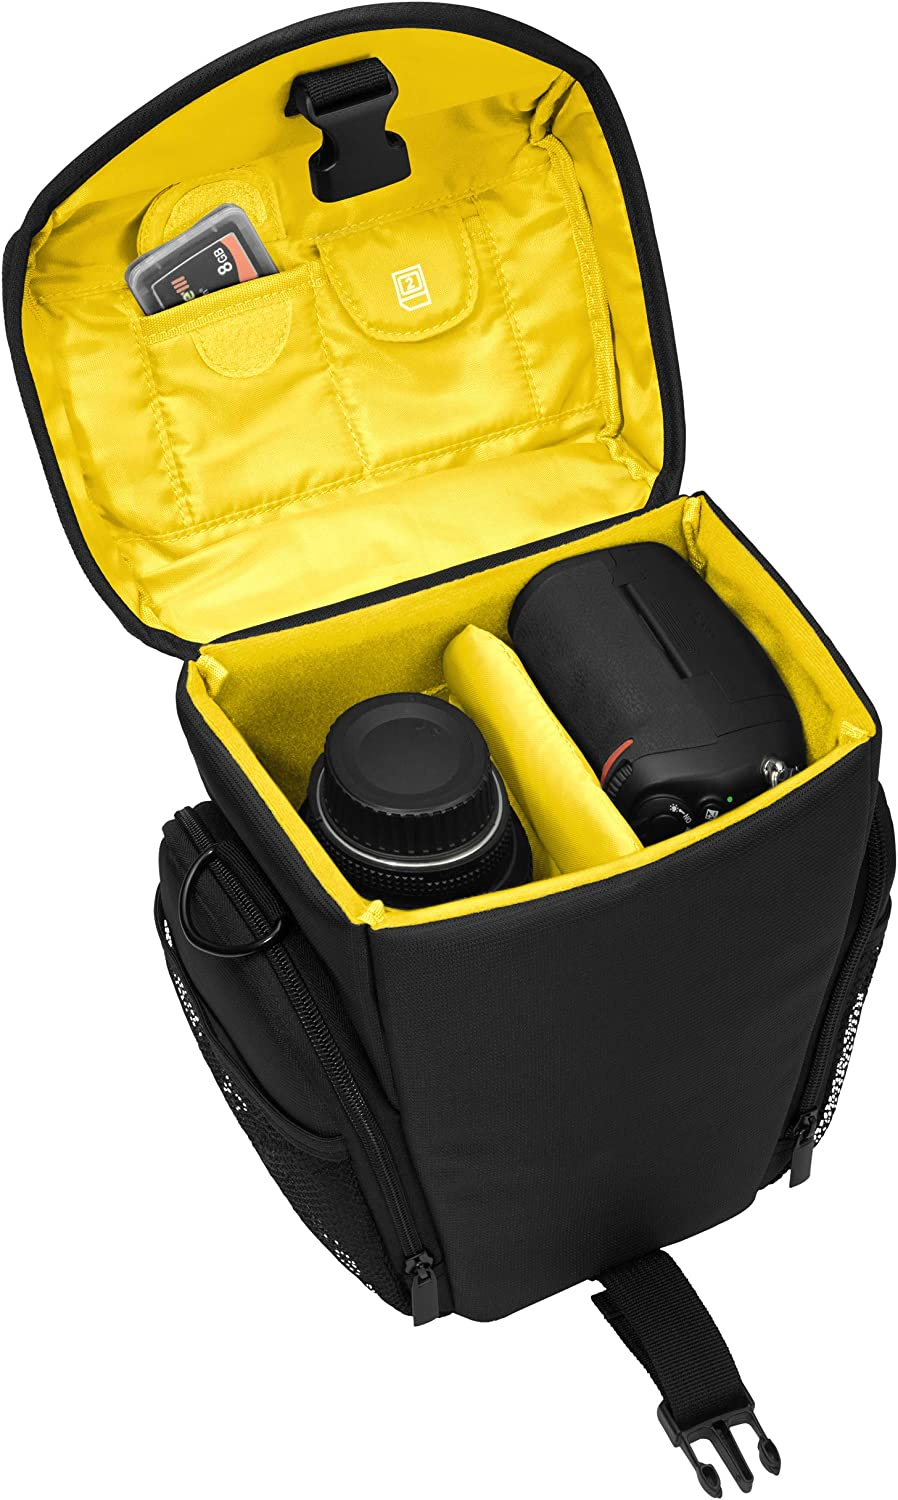 Essex Large SLR Case with Rain Cover and Screen Protector for Nikon D500//D610//D3300//D3400//D5300//D7100//D7200 //Canon EOS 1300D//5D Mark II Camera Yellow